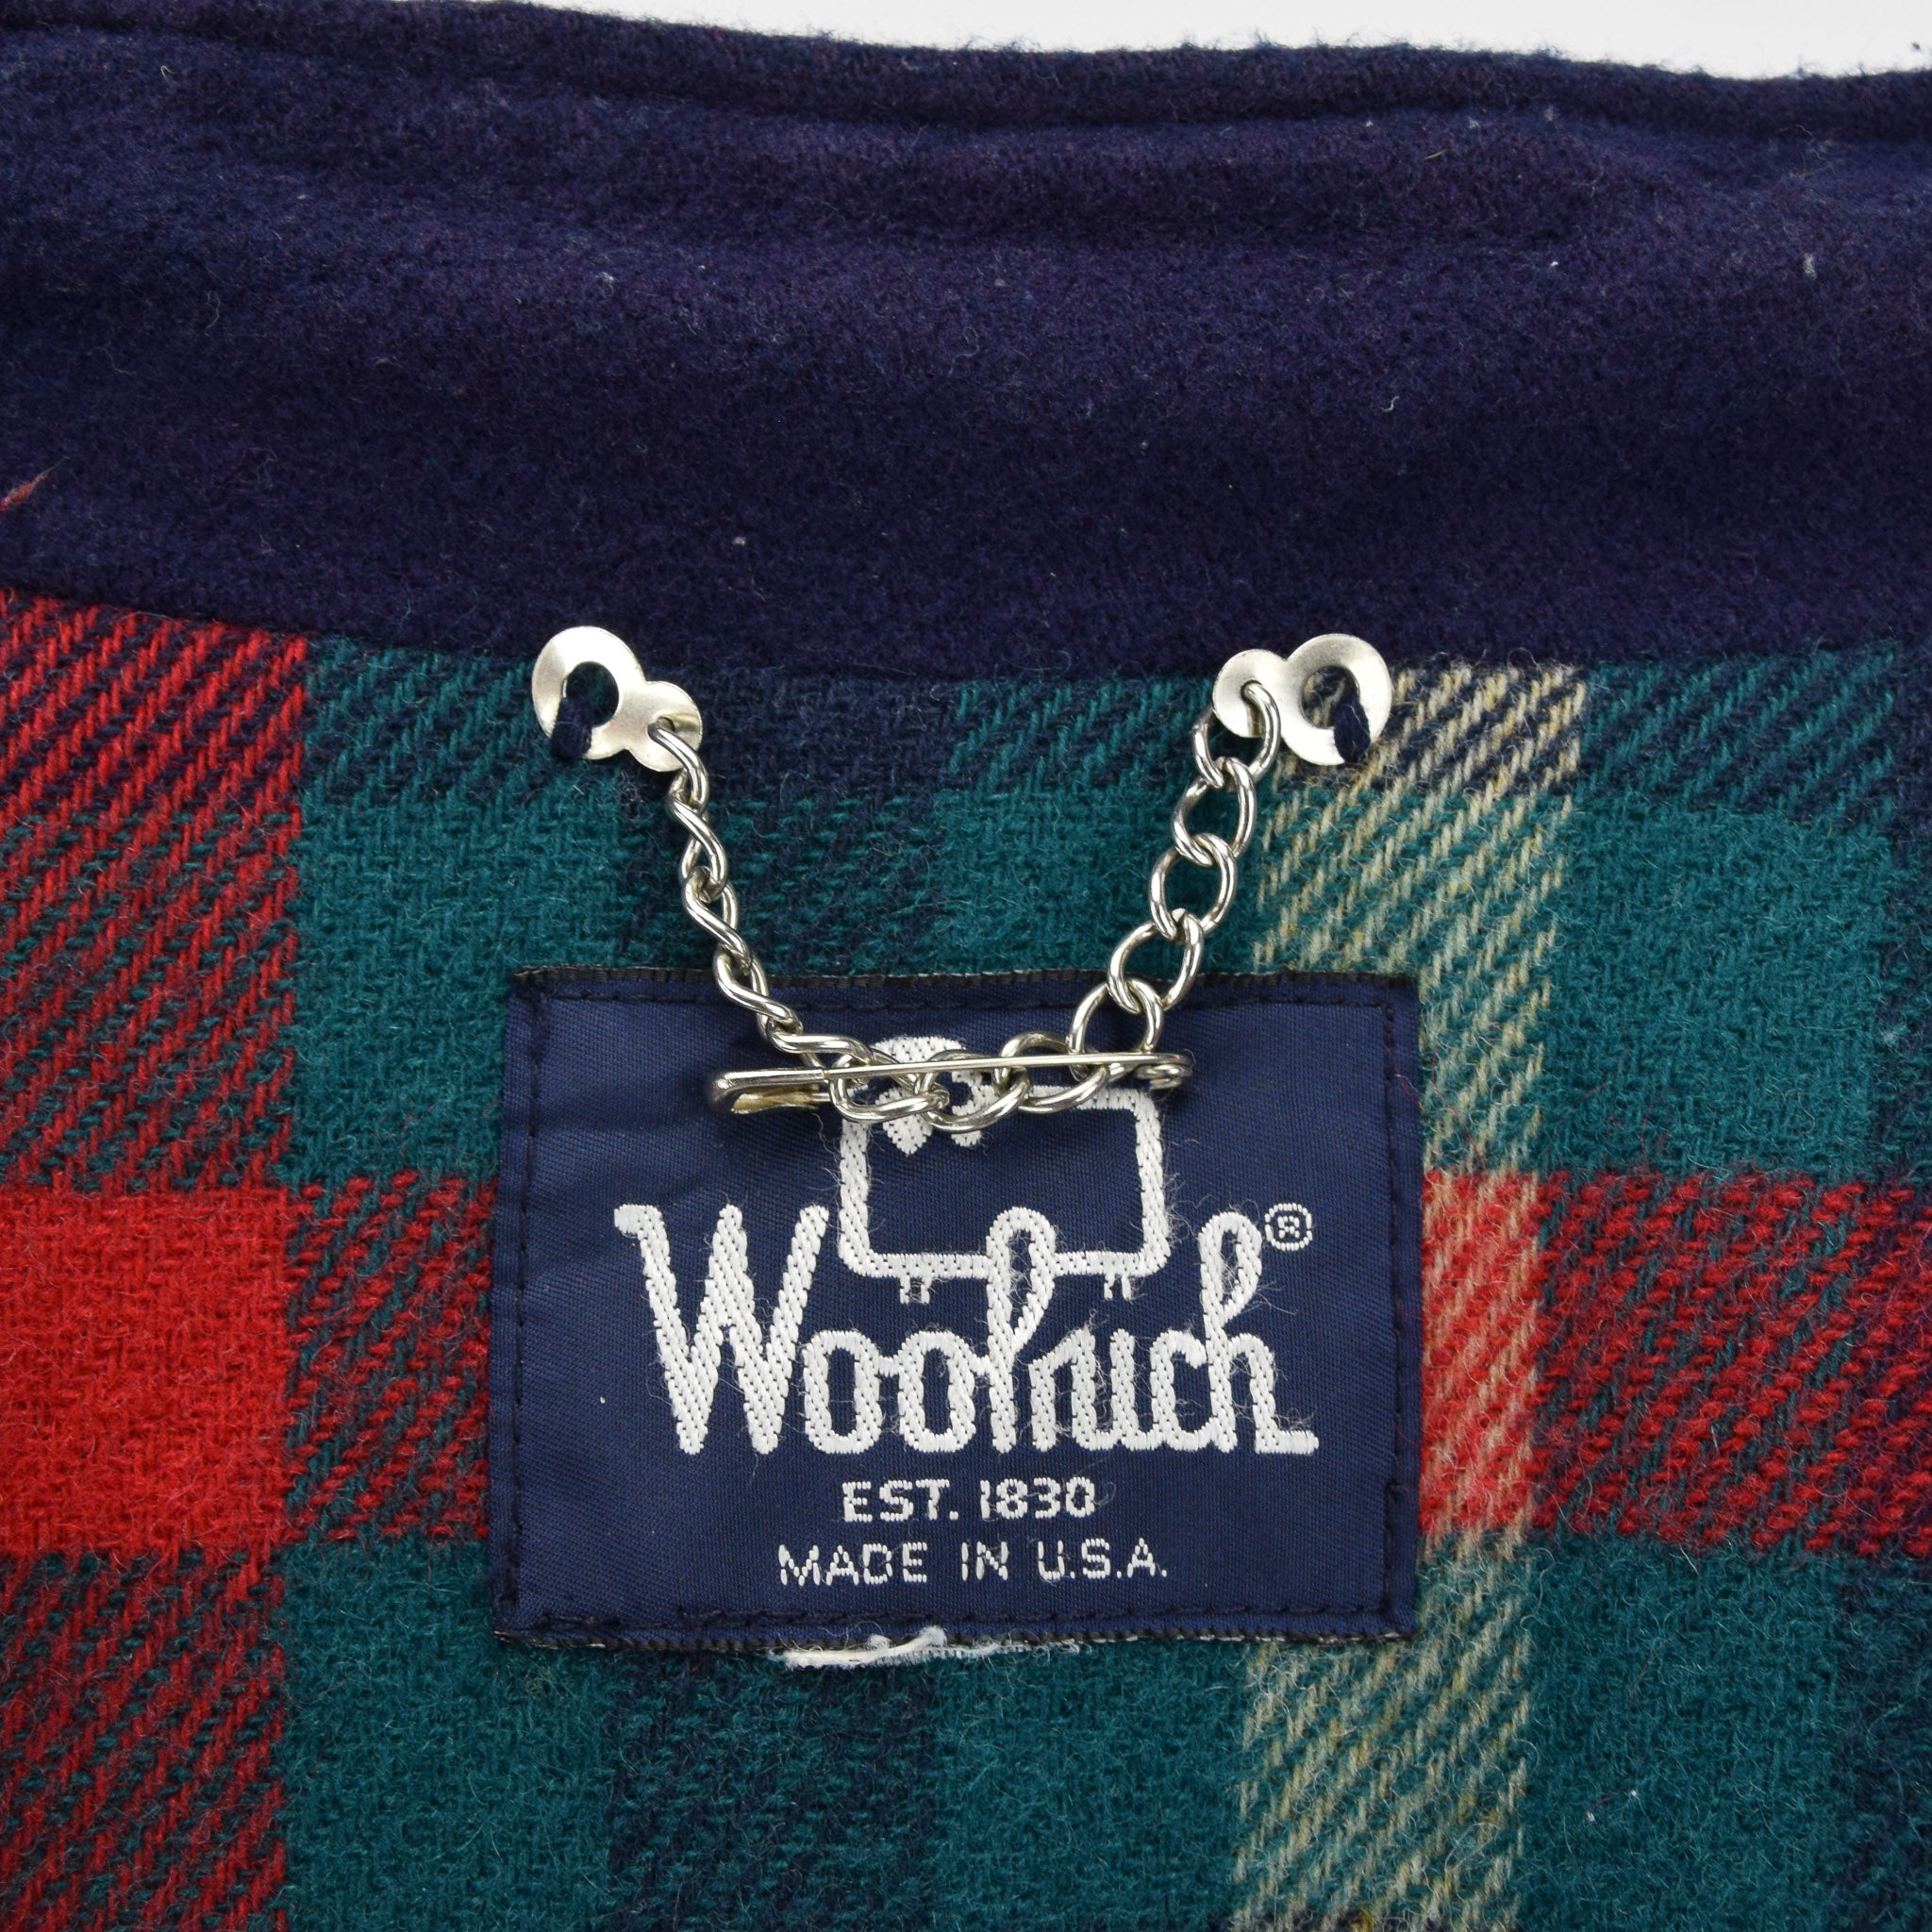 Vintage Woolrich Blue Bomber Jacket Plaid Lined Made in USA Made XXL label